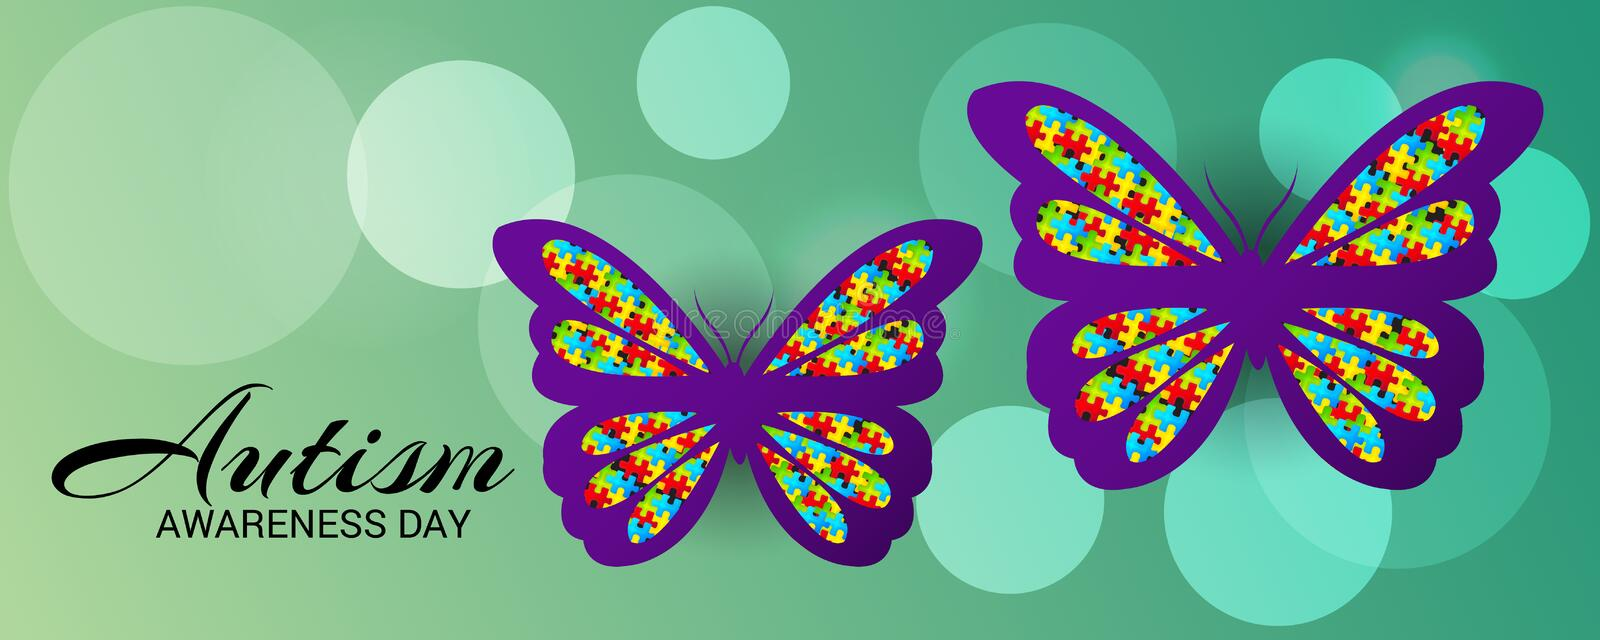 Autism Awareness Day. vector illustration